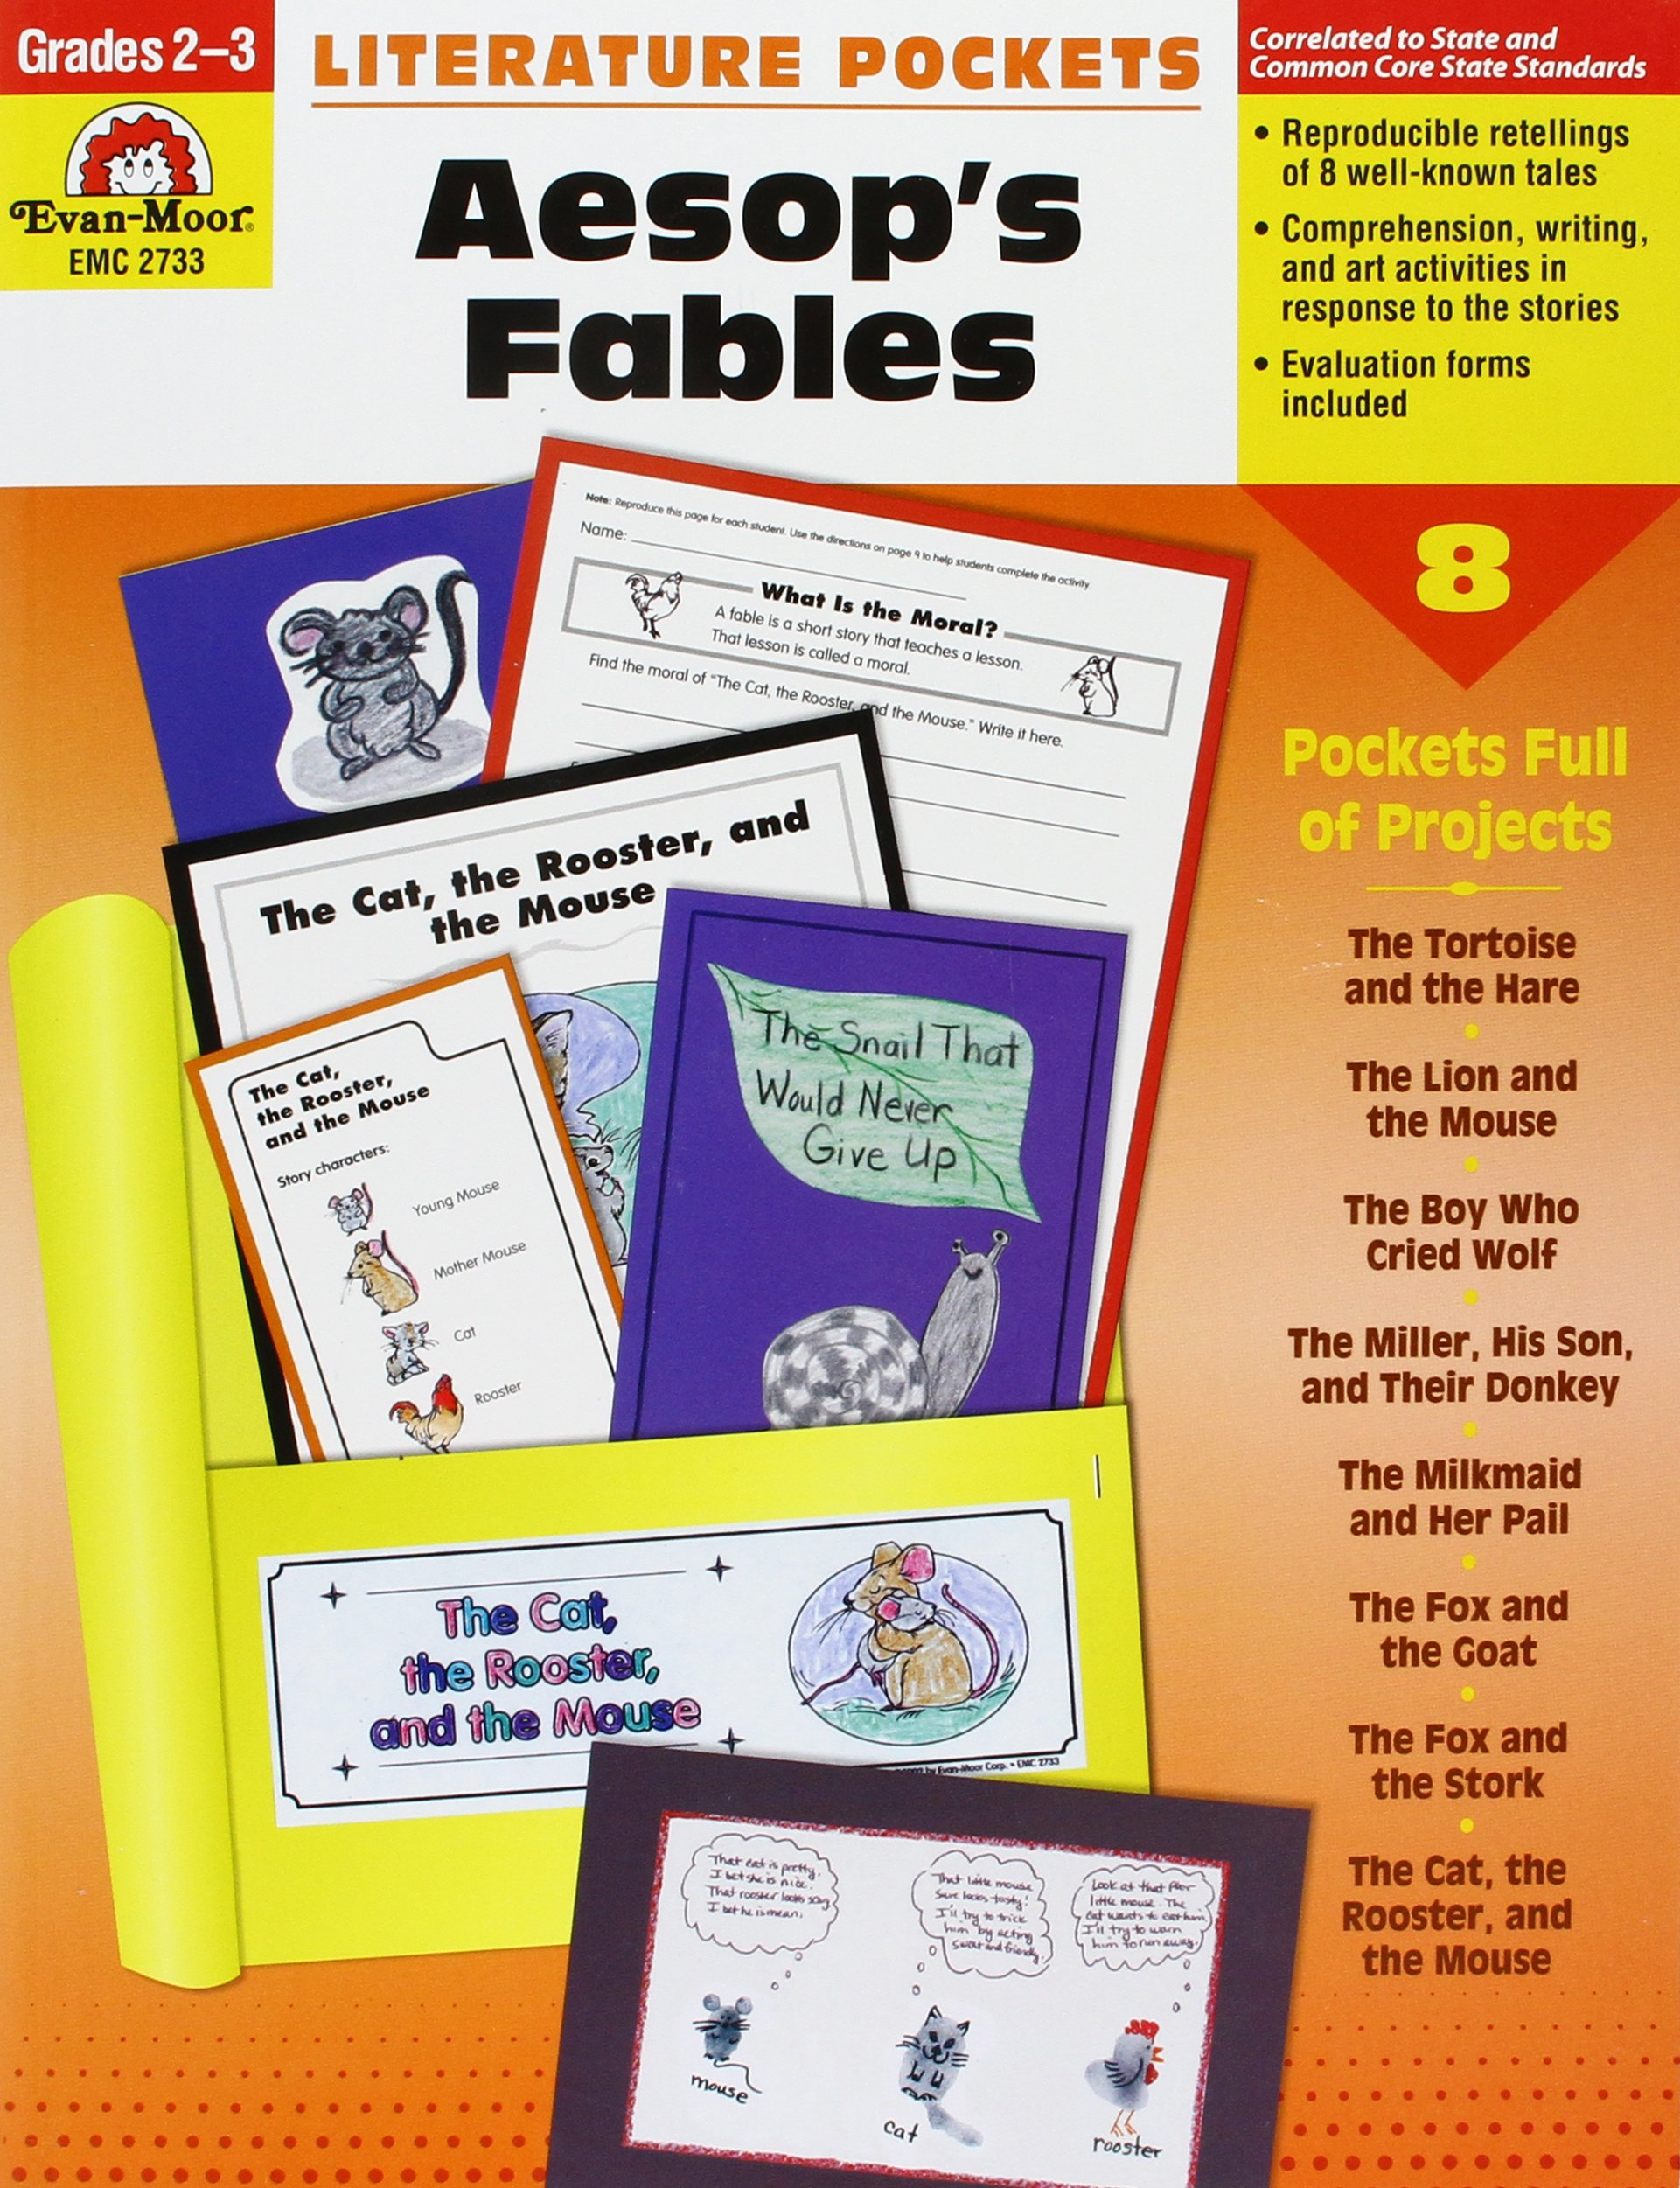 Amazon.com: Literature Pockets, Aesop's Fables, Grades 2-3 (9781557998743):  Evan Moor: Books